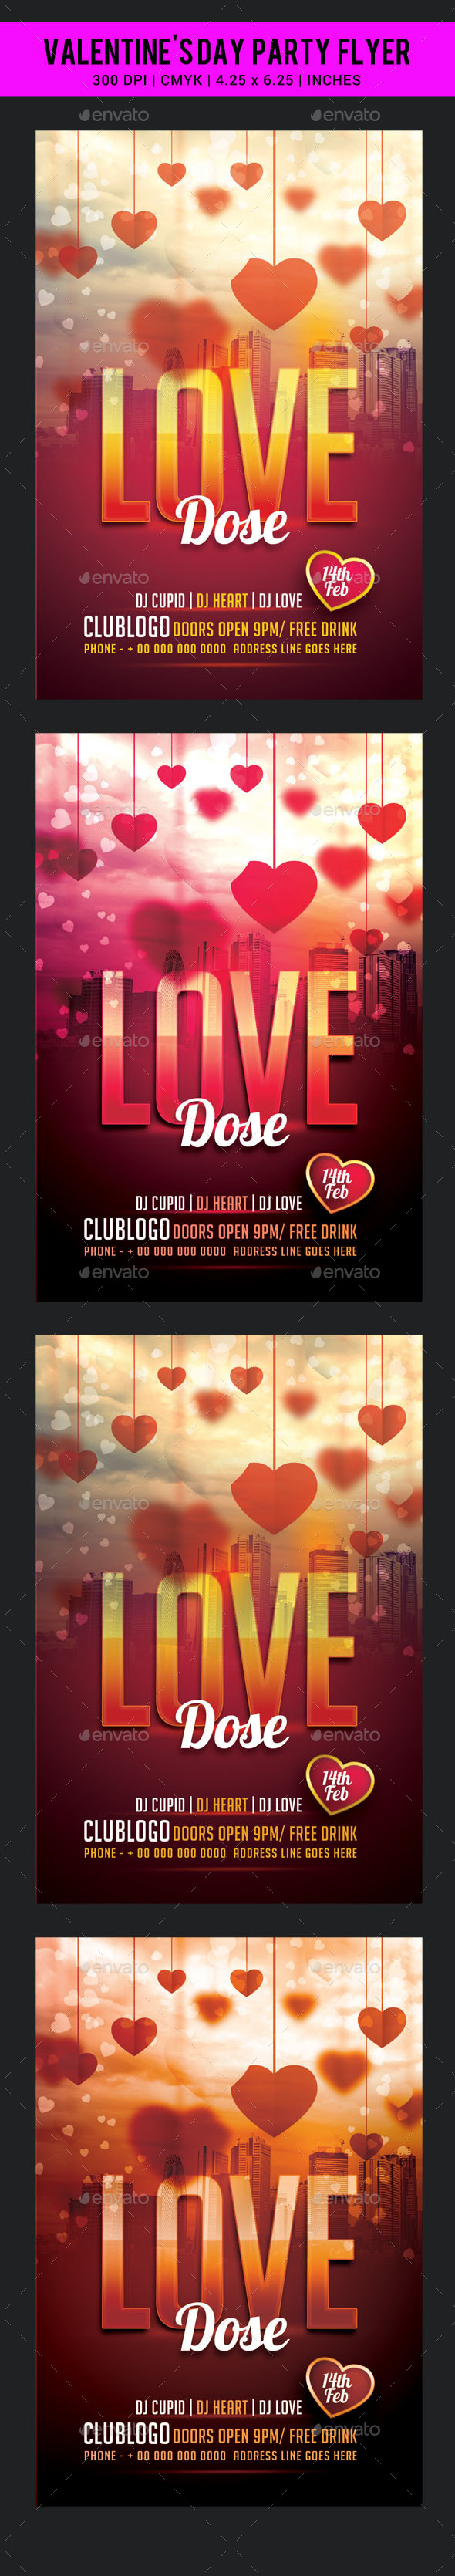 Valentine's Day Party Flyer Template - Clubs & Parties Events